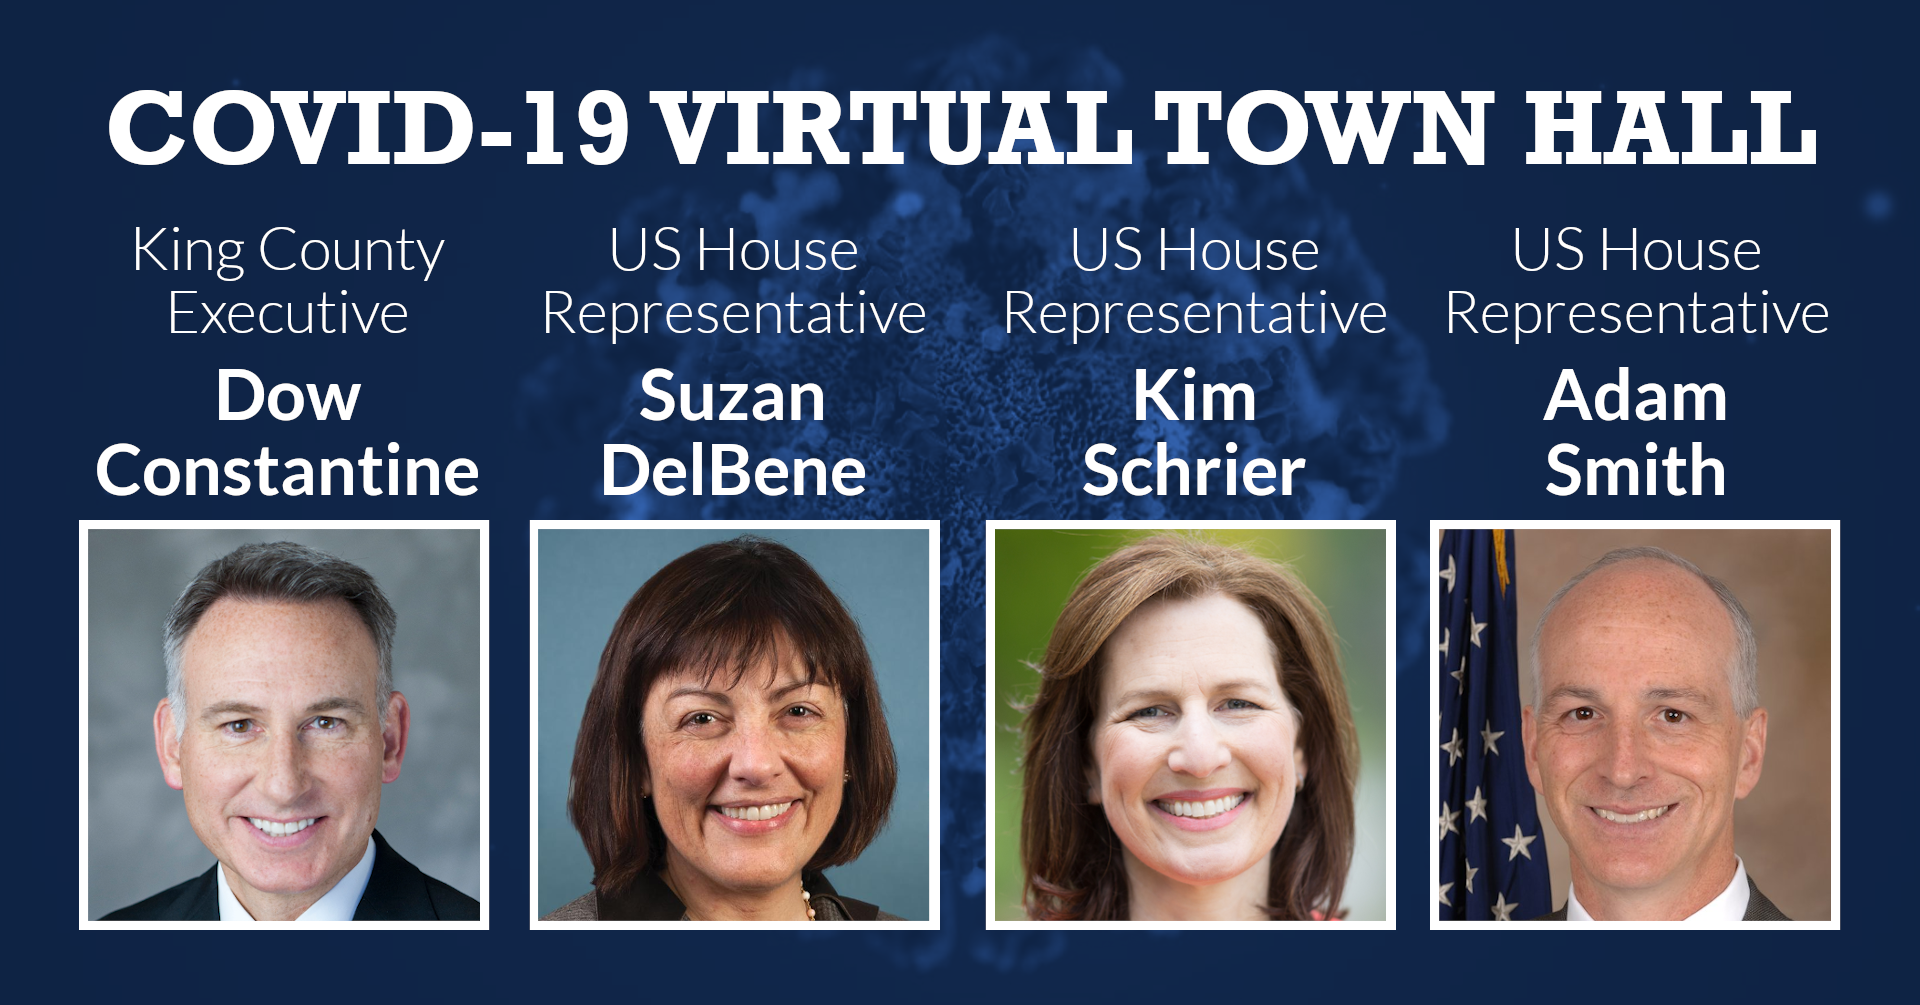 COVID-19 Virtual Town Hall with King County Executive Dow Constantine, US House Representatives Suzan DelBene, Kim Schrier, and Adam Smith